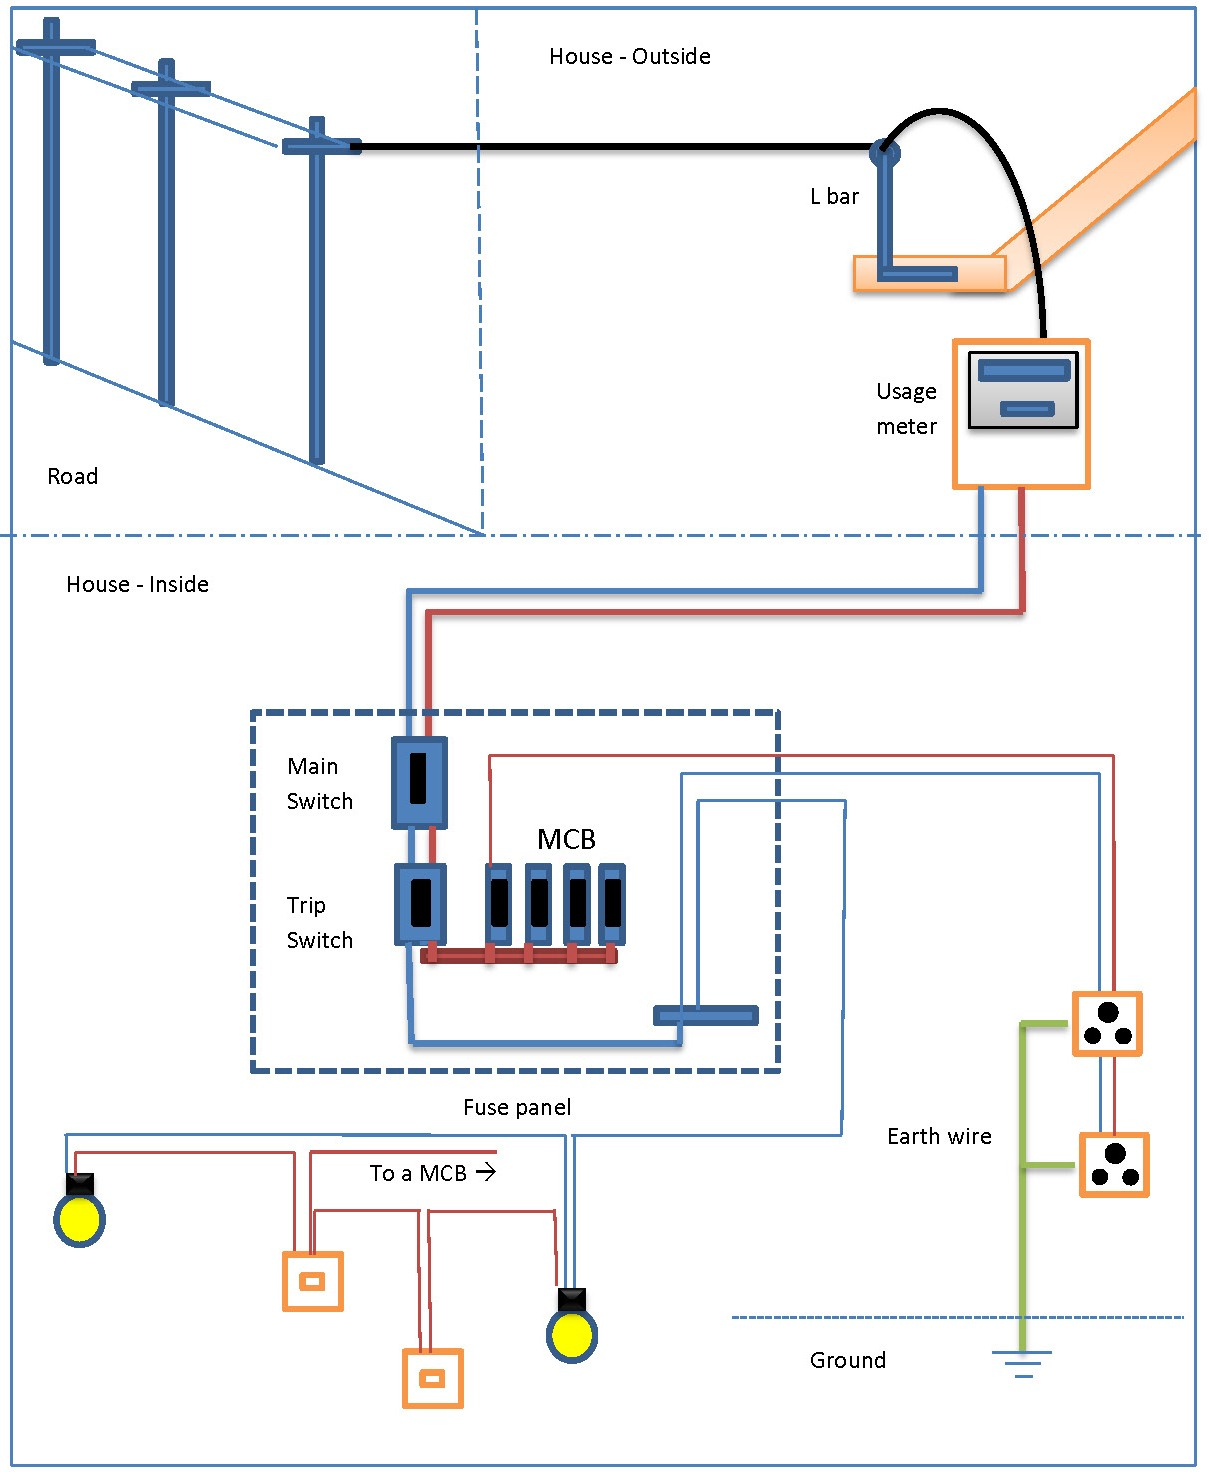 Doc3 senasum's blog house wiring diagram sri lanka house wiring diagrams at readyjetset.co